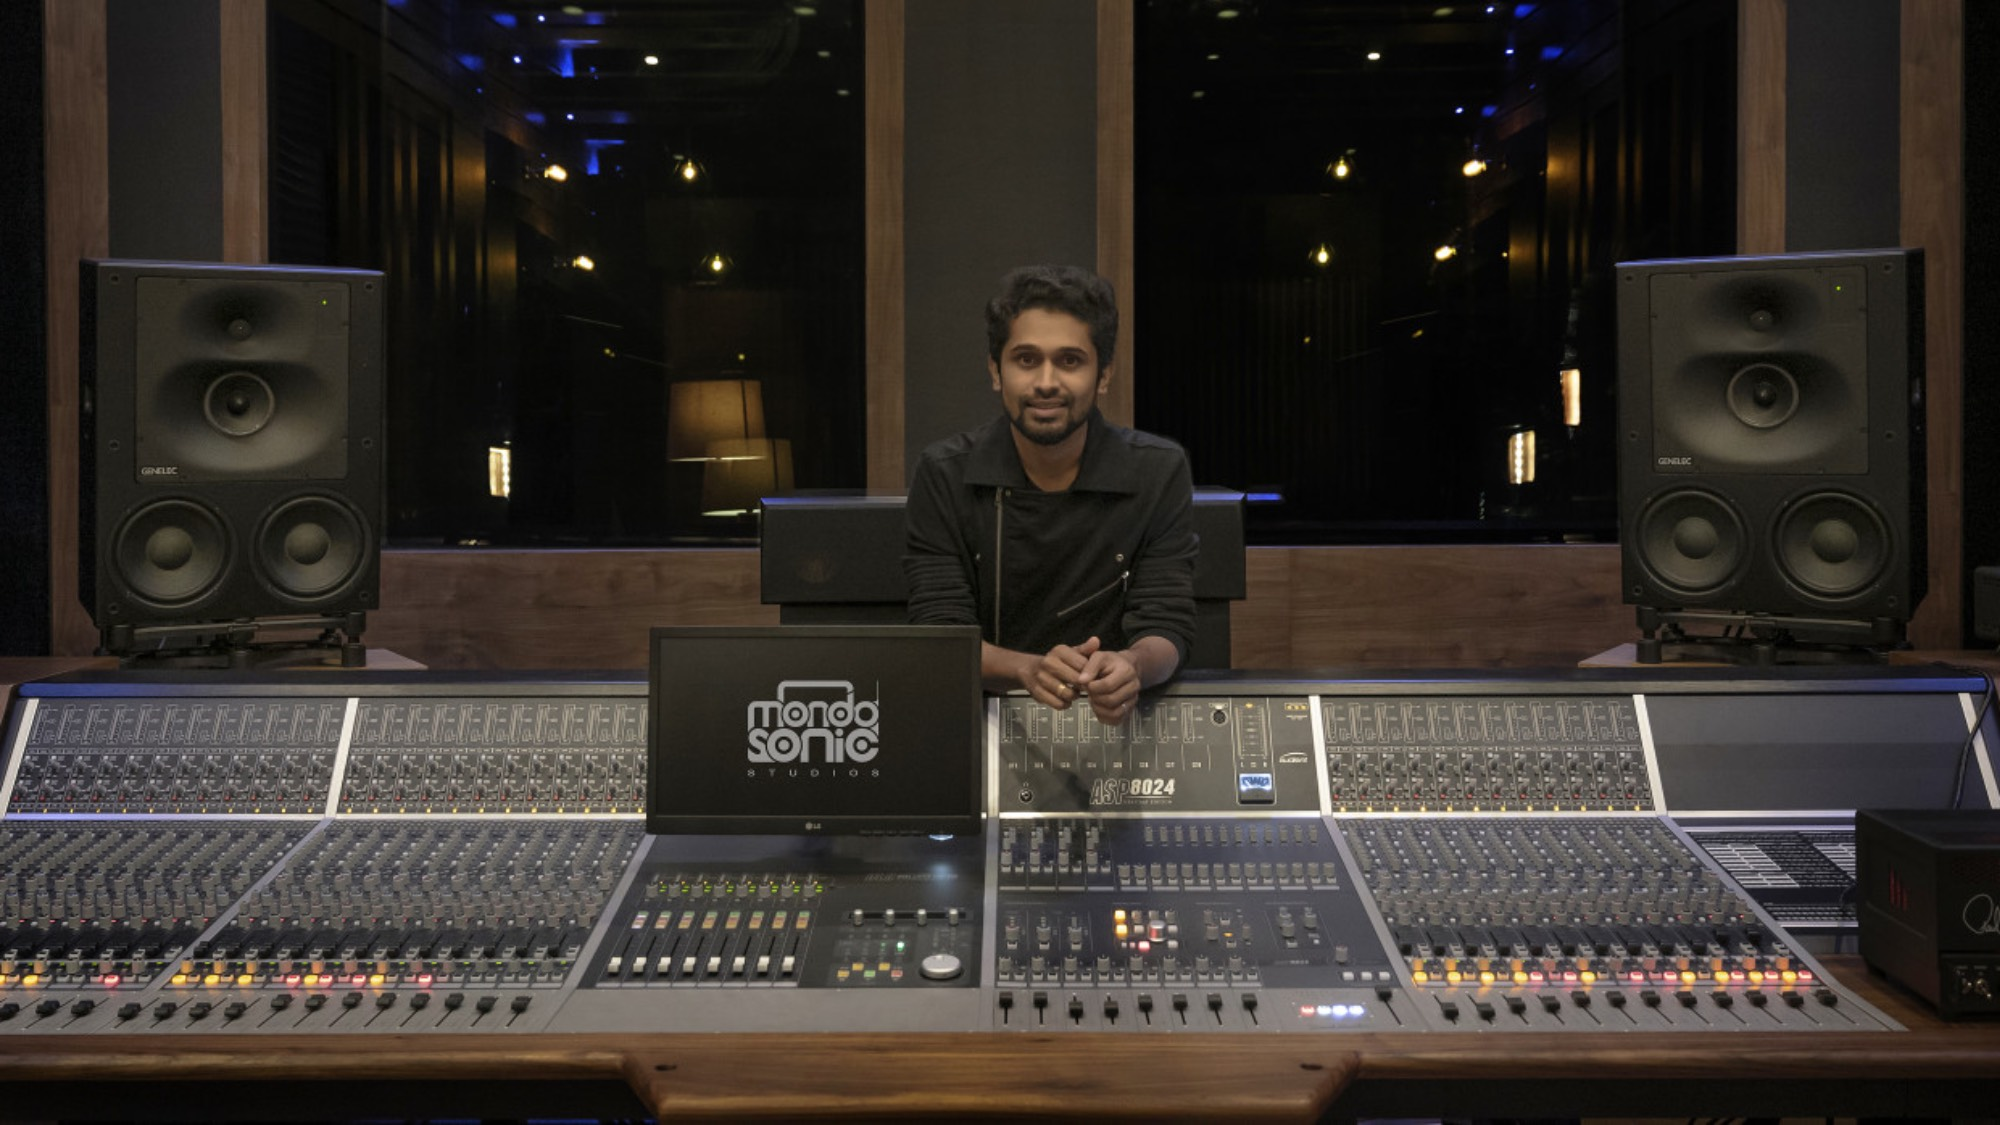 Man sitting by a mixing desk in a music studio